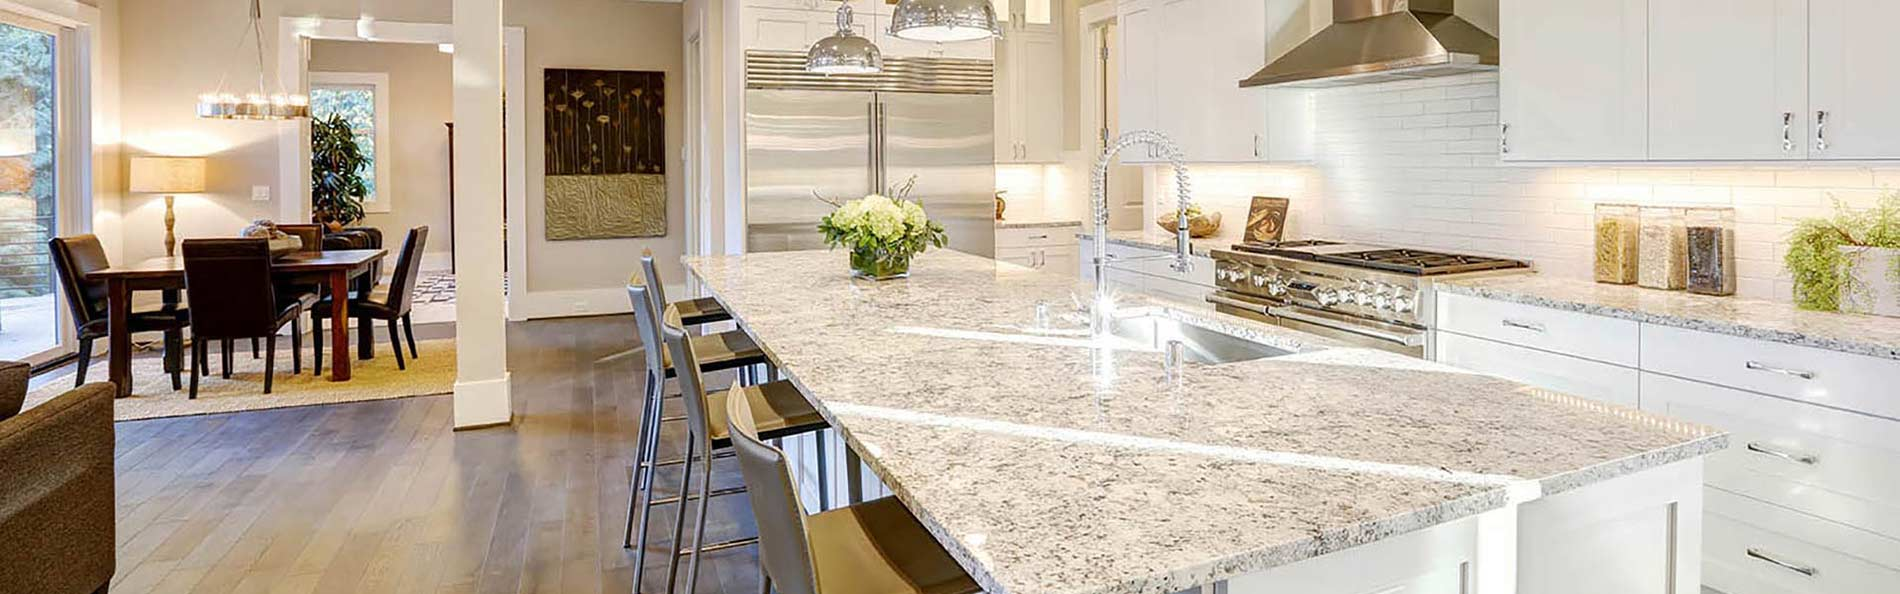 We carry a large selection of granite countertops at Anniston Floors To Go.